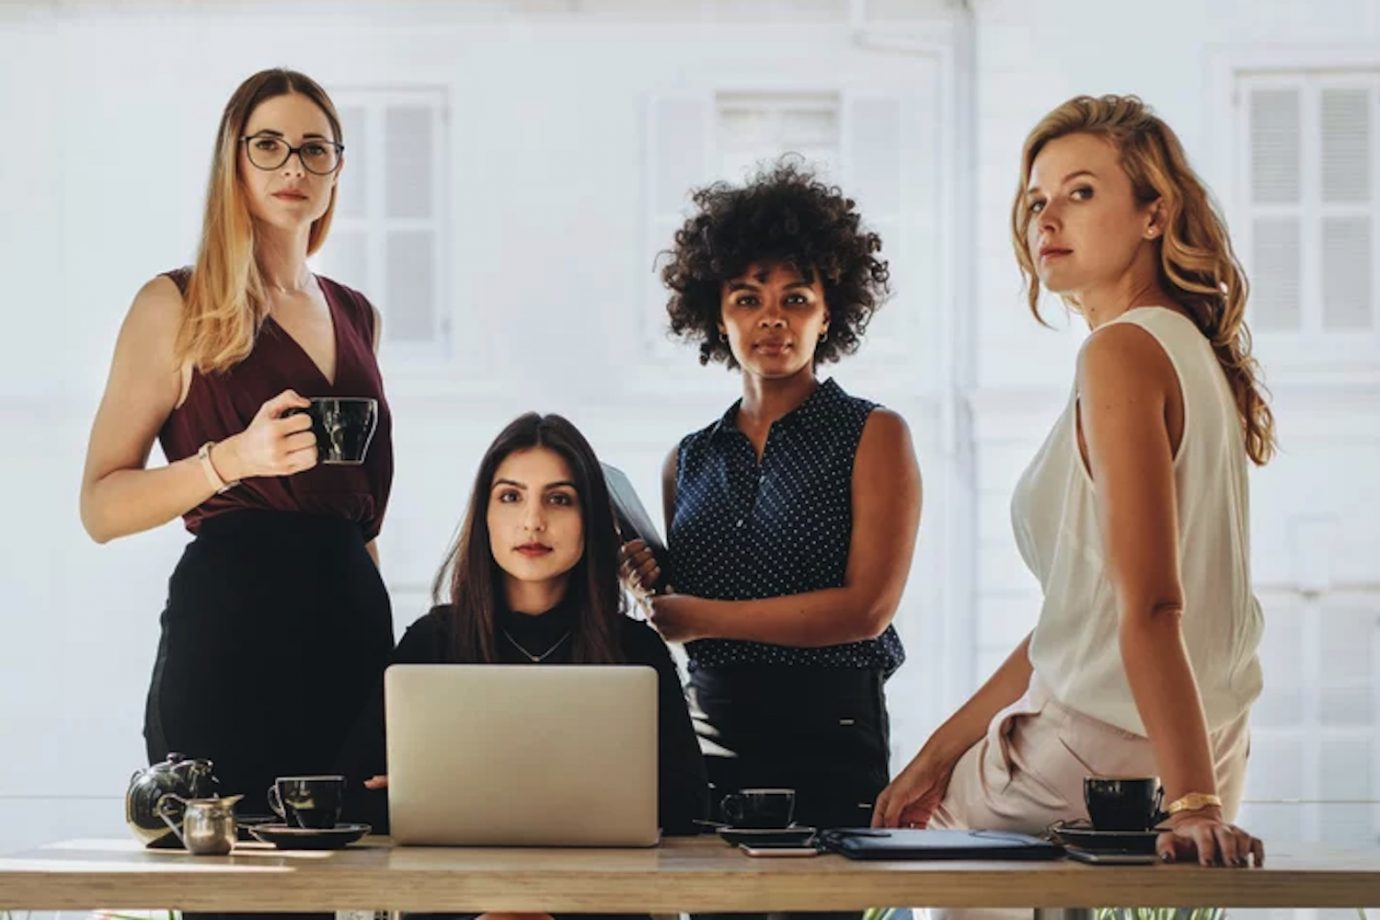 Barclaycard Everywoman In Retail Awards Finalists Are The Industry's Top Female Talent